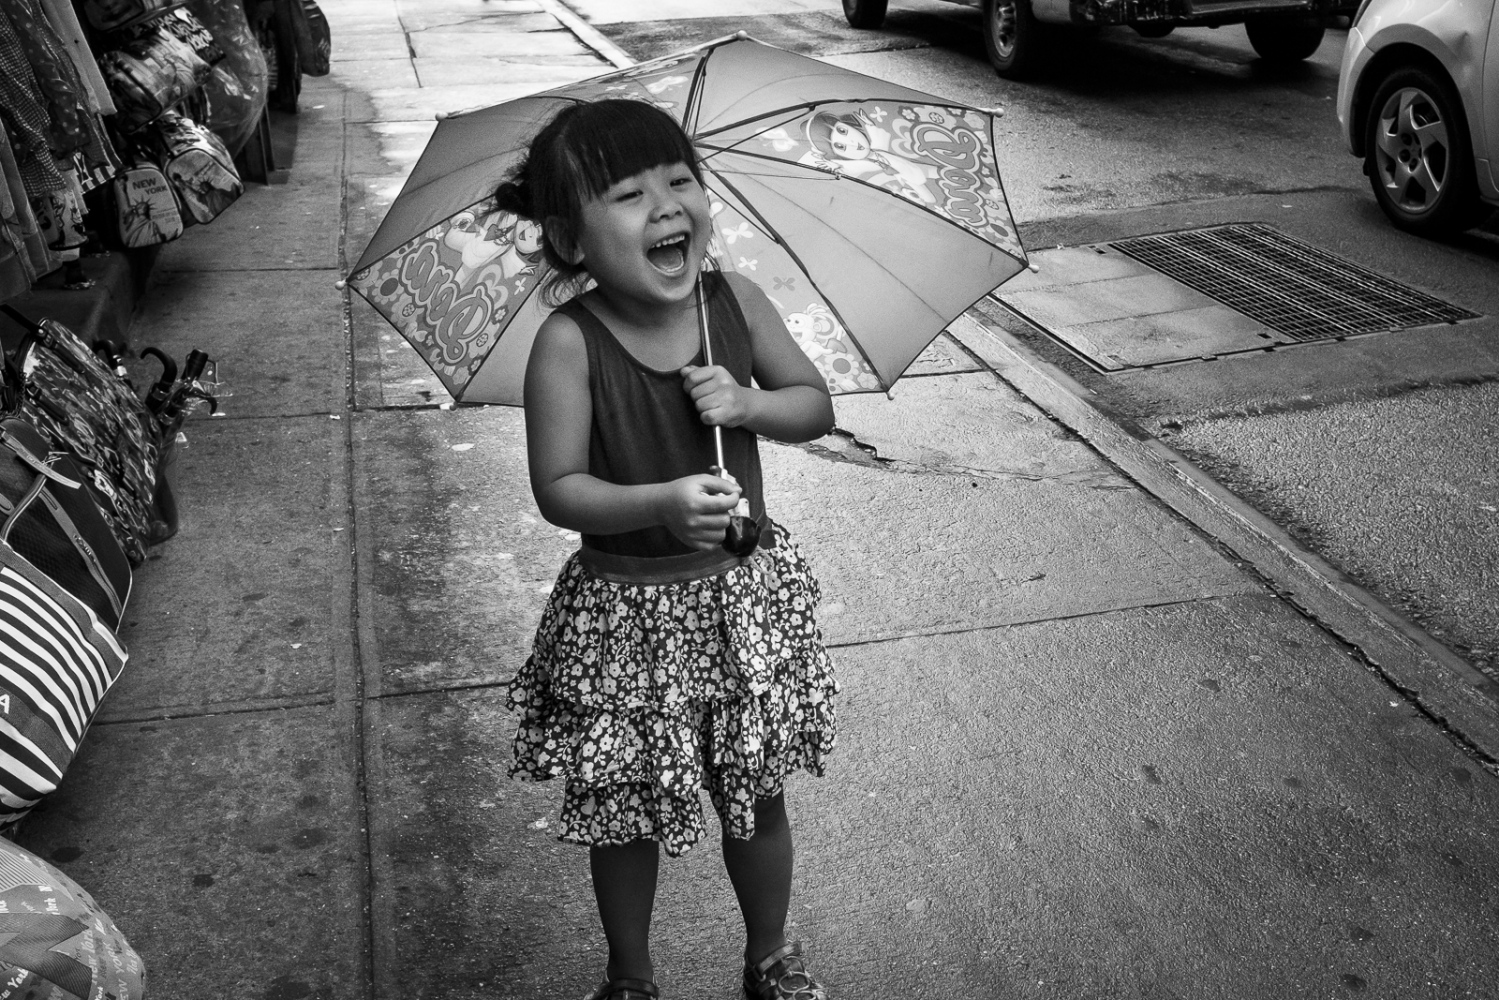 Rainy Day Chinatown, NYC